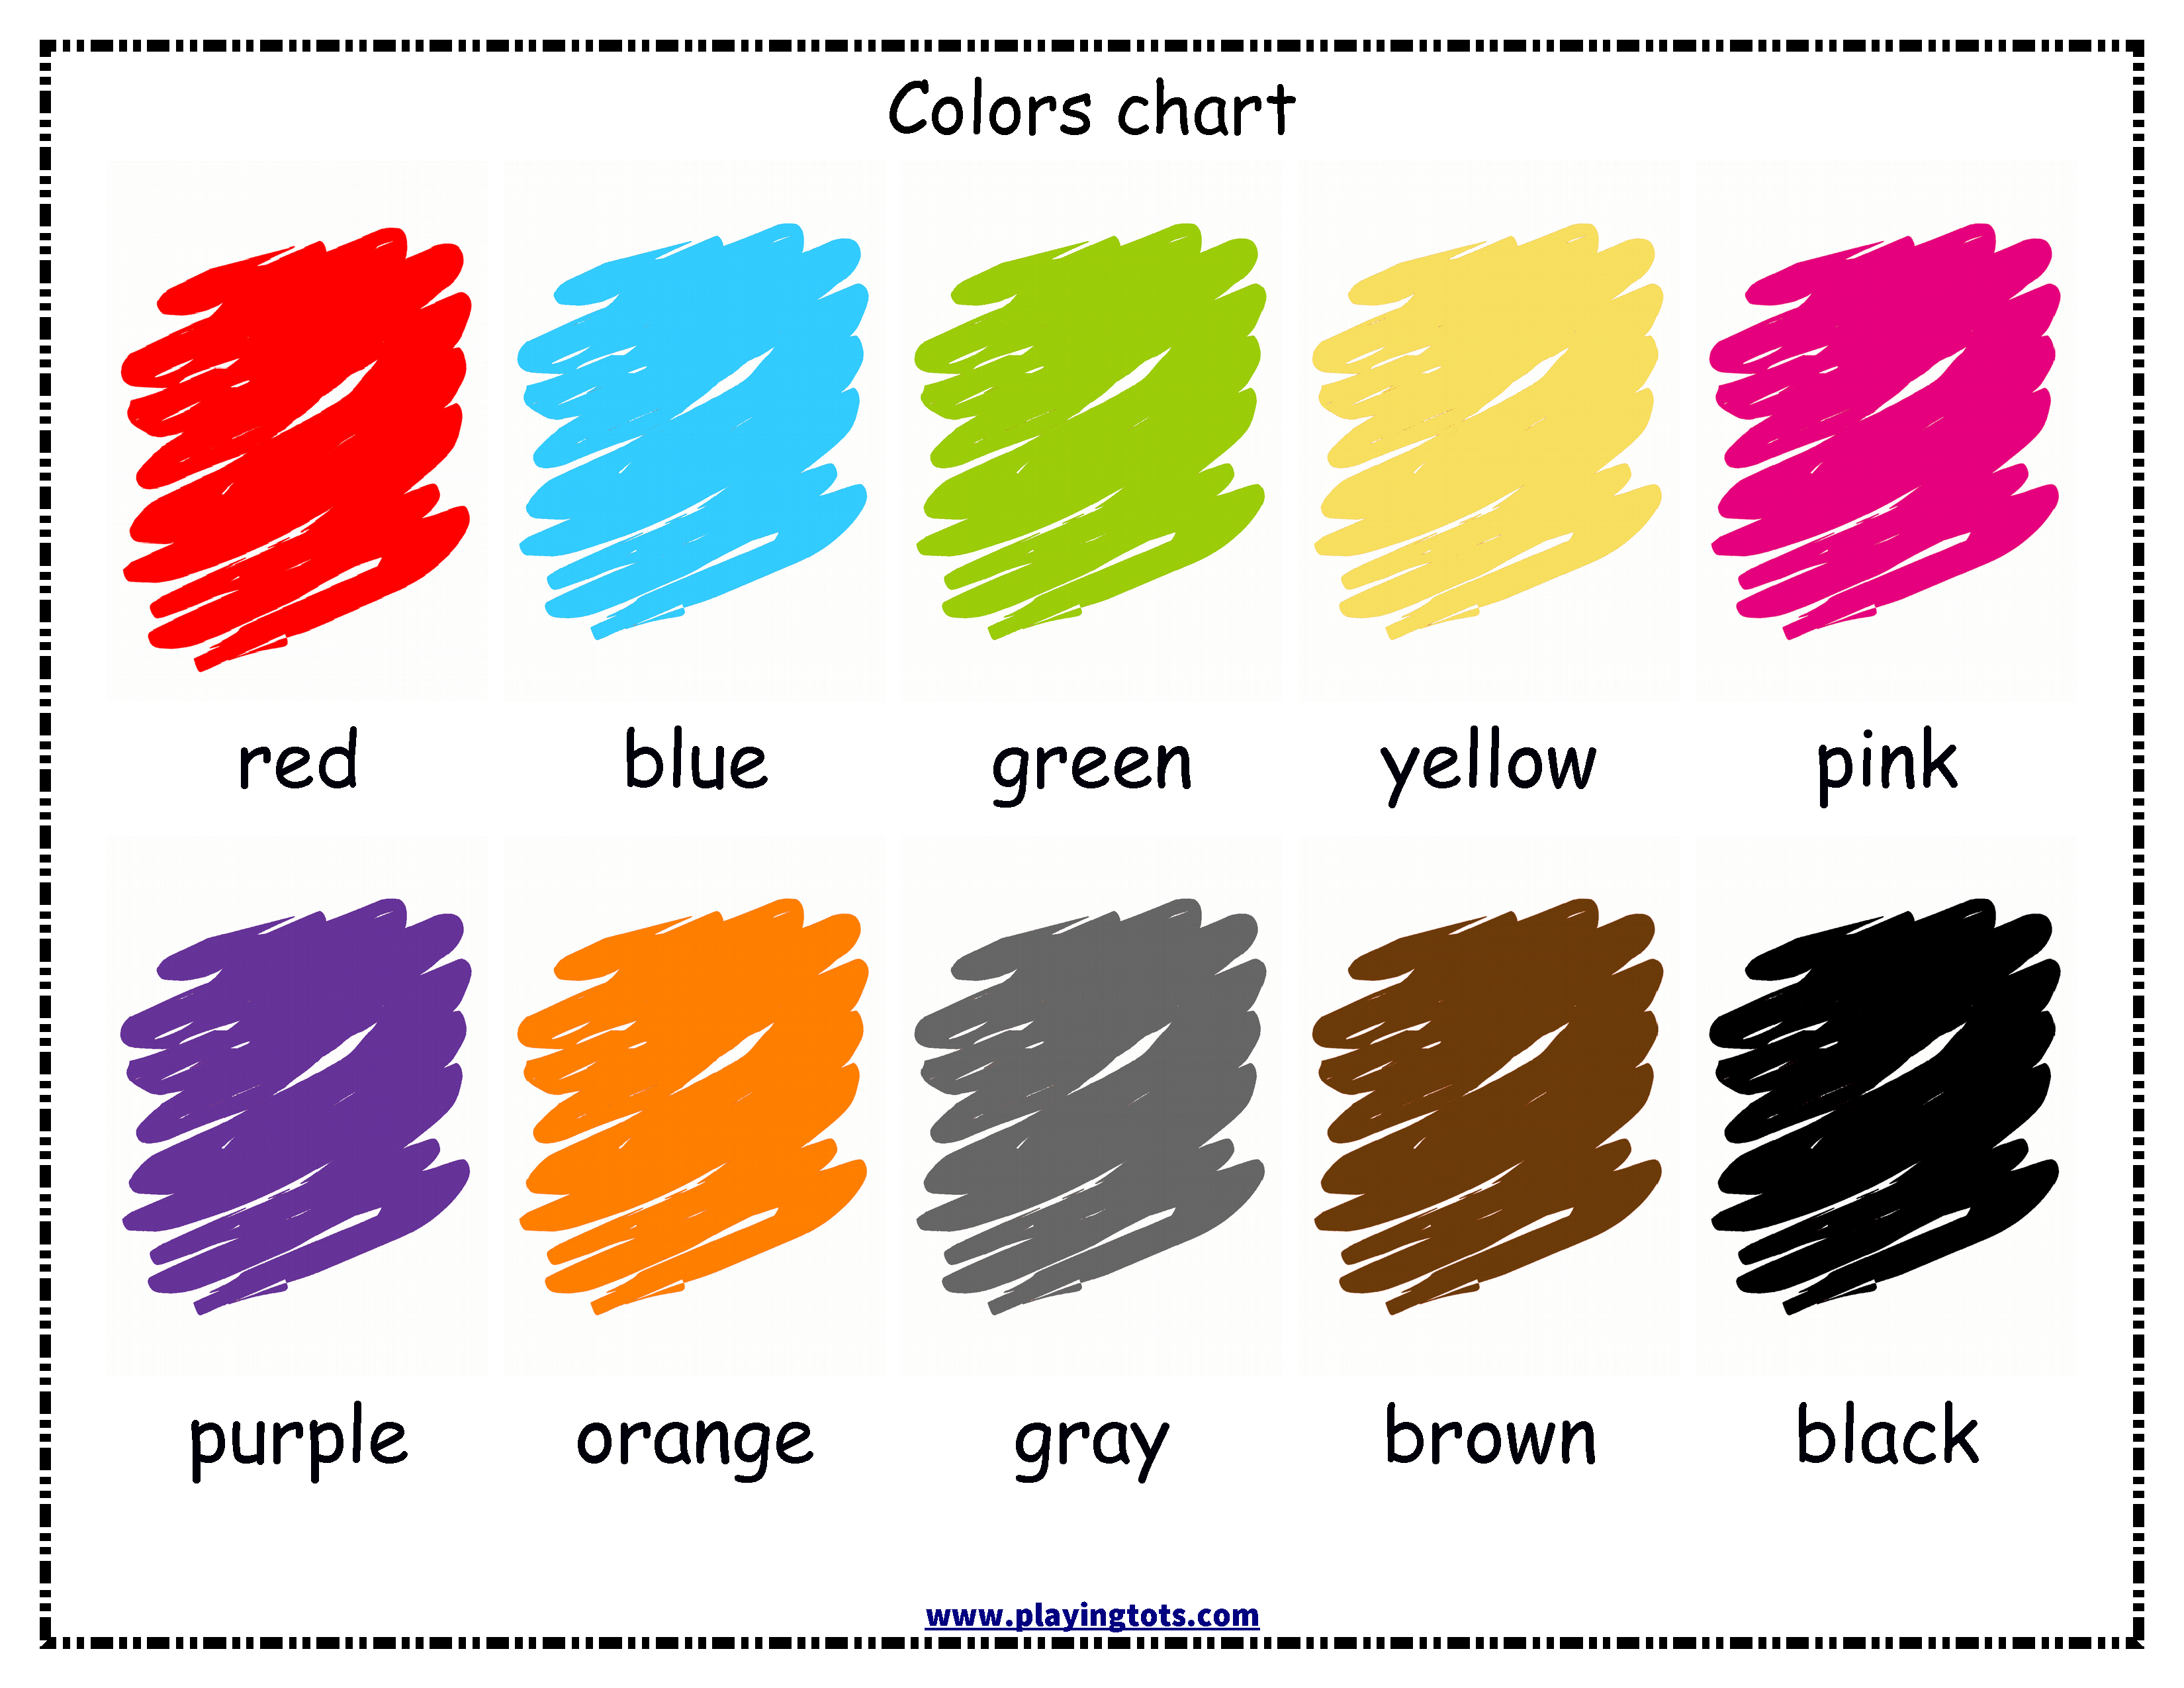 free printable colors chart for your toddler keywords: free